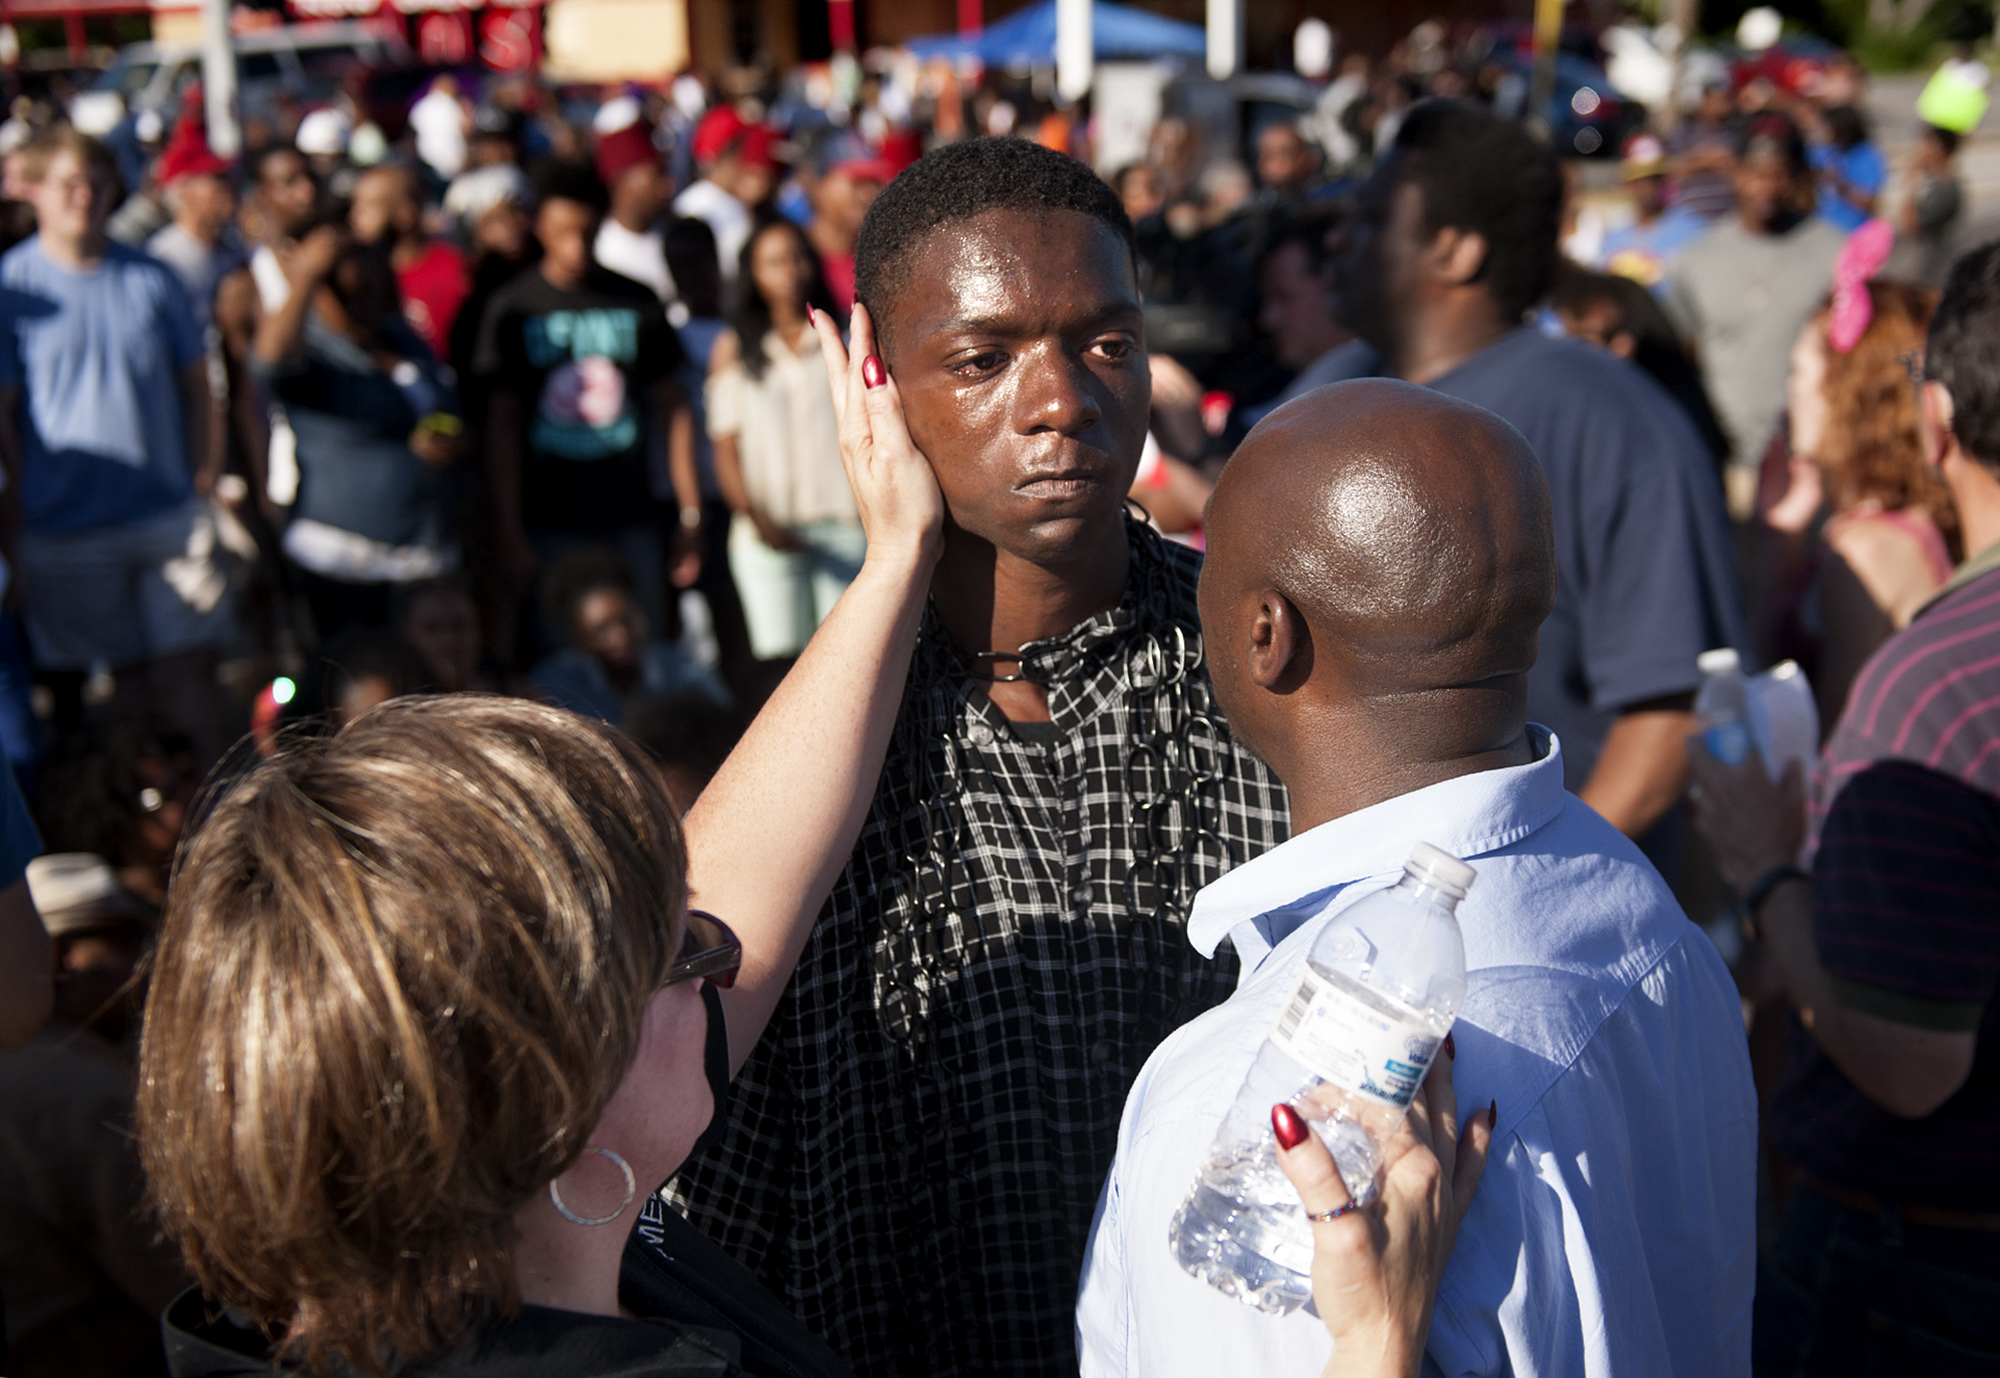 The Rev. Willis Johnson (right) confronts 18-year-old Joshua Wilson as protesters defy police and block traffic on West Florissant Avenue at Canfield Drive in Ferguson, Mo. Wednesday, Aug. 13, 2014 as part of their protests over the the shooting of 18-year-old Michael Brown, Jr., who died Saturday, Aug. 9, 2014 following an altercation with police in the St. Louis suburb. Rev. Johnson convinced Wilson, one of the last holdouts in the intersection, that he should leave and avoid arrest. Joining Johnson and Wilson was a member of the clergy from the African Episcopal Methodist Church who declined to give her name. (Photo by Sid Hastings/For The Washington Post via Getty Images)